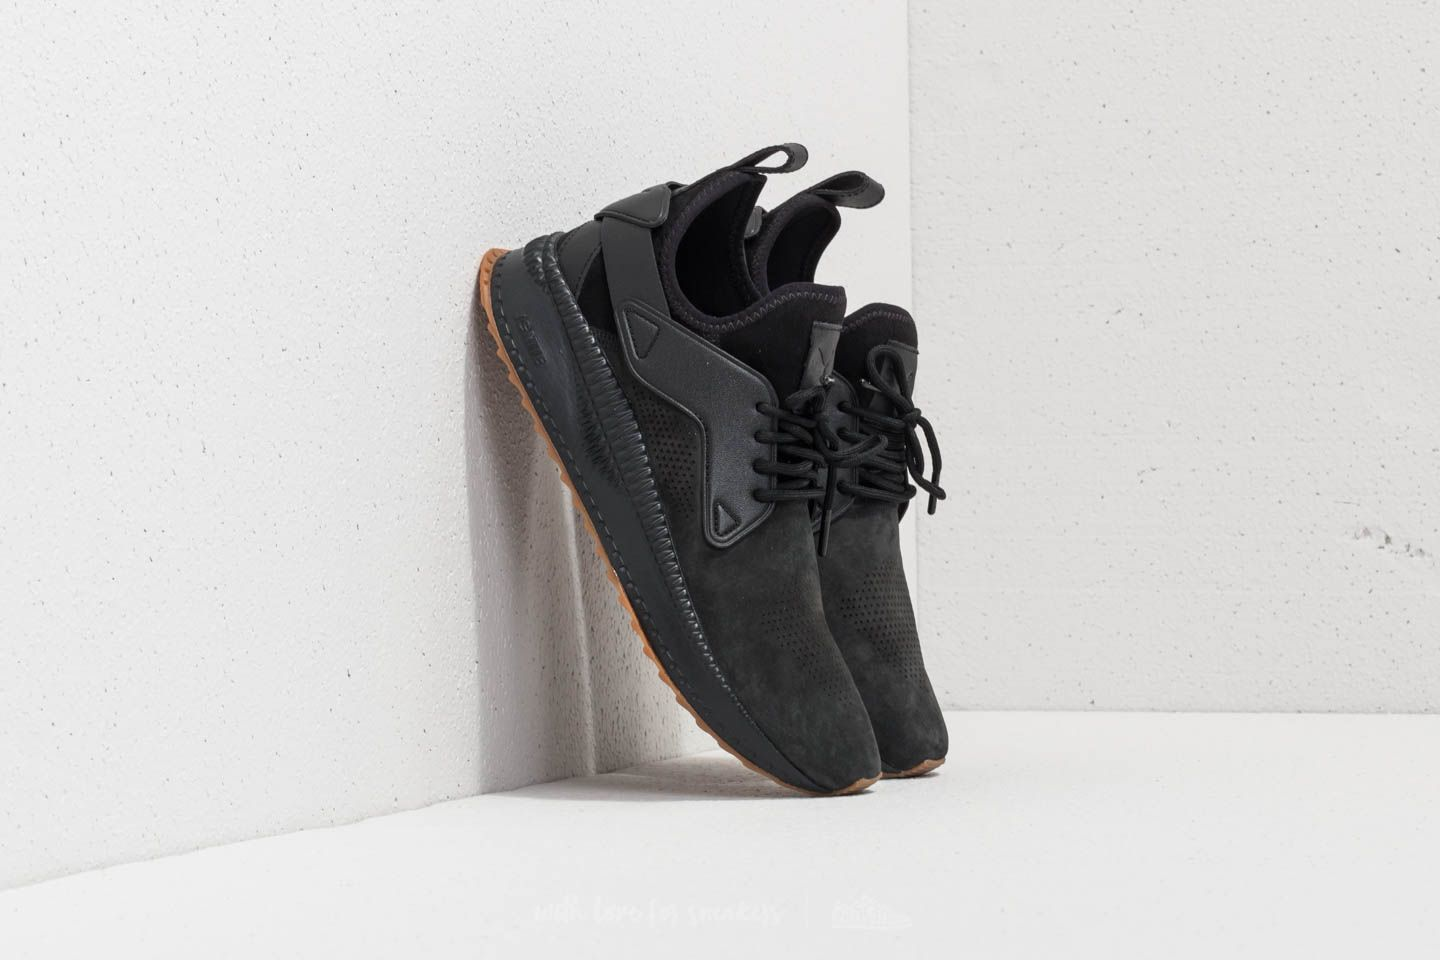 Puma Tsugi Cage Roasted Puma Black/ Whisper White